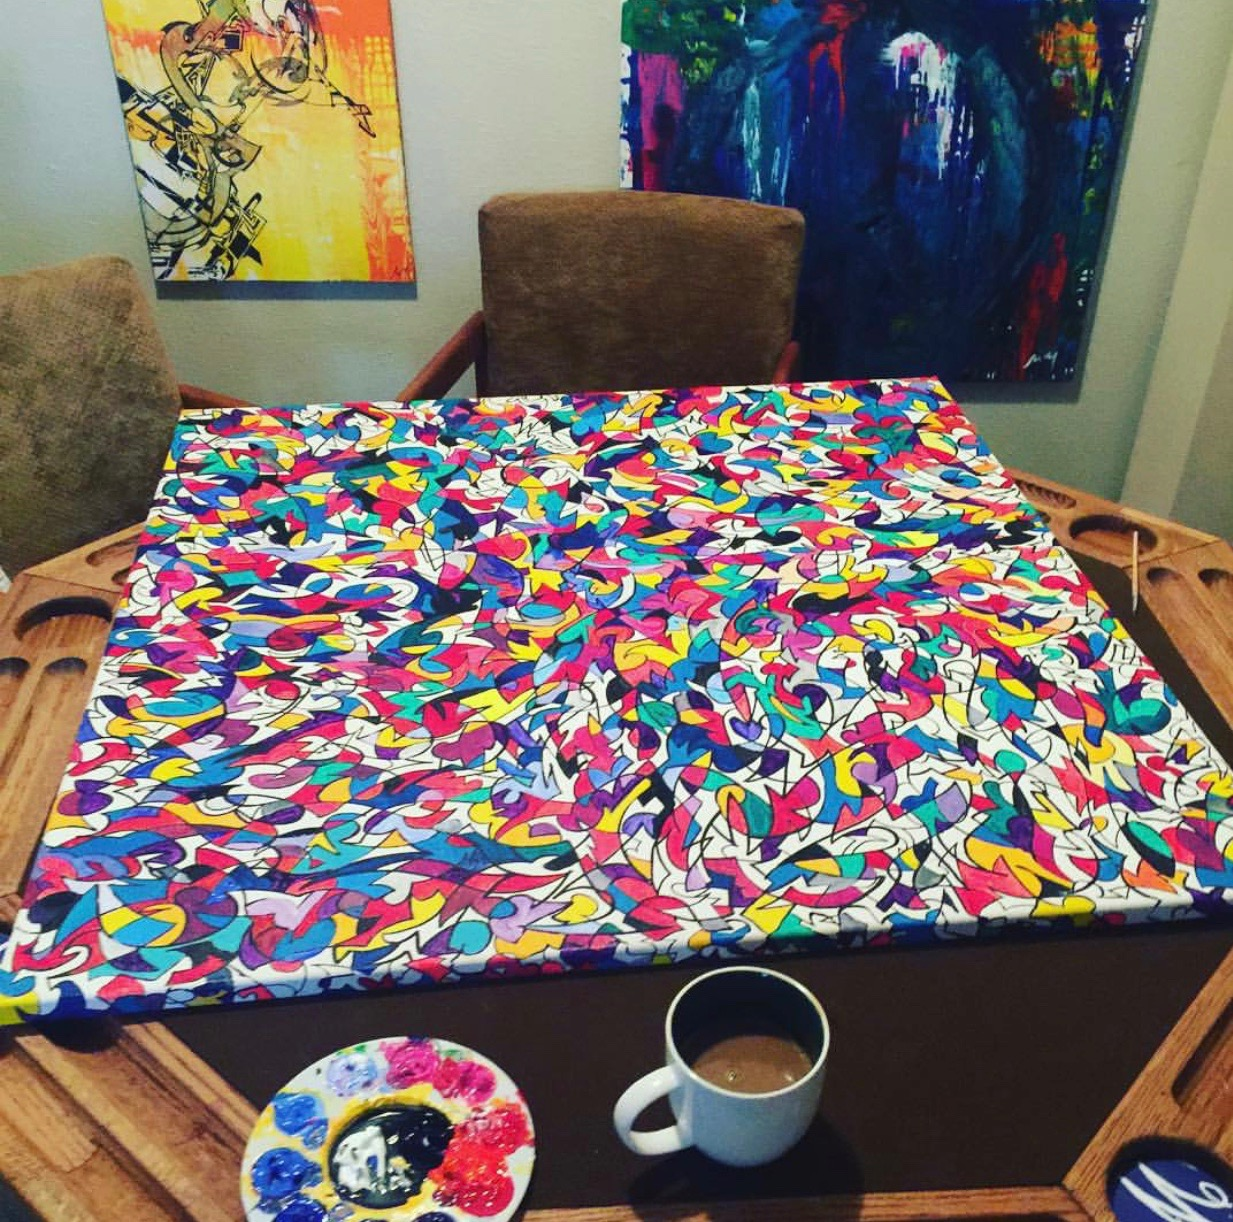 "Process Photo of painting ""Window"" in our apartment on our poker table."